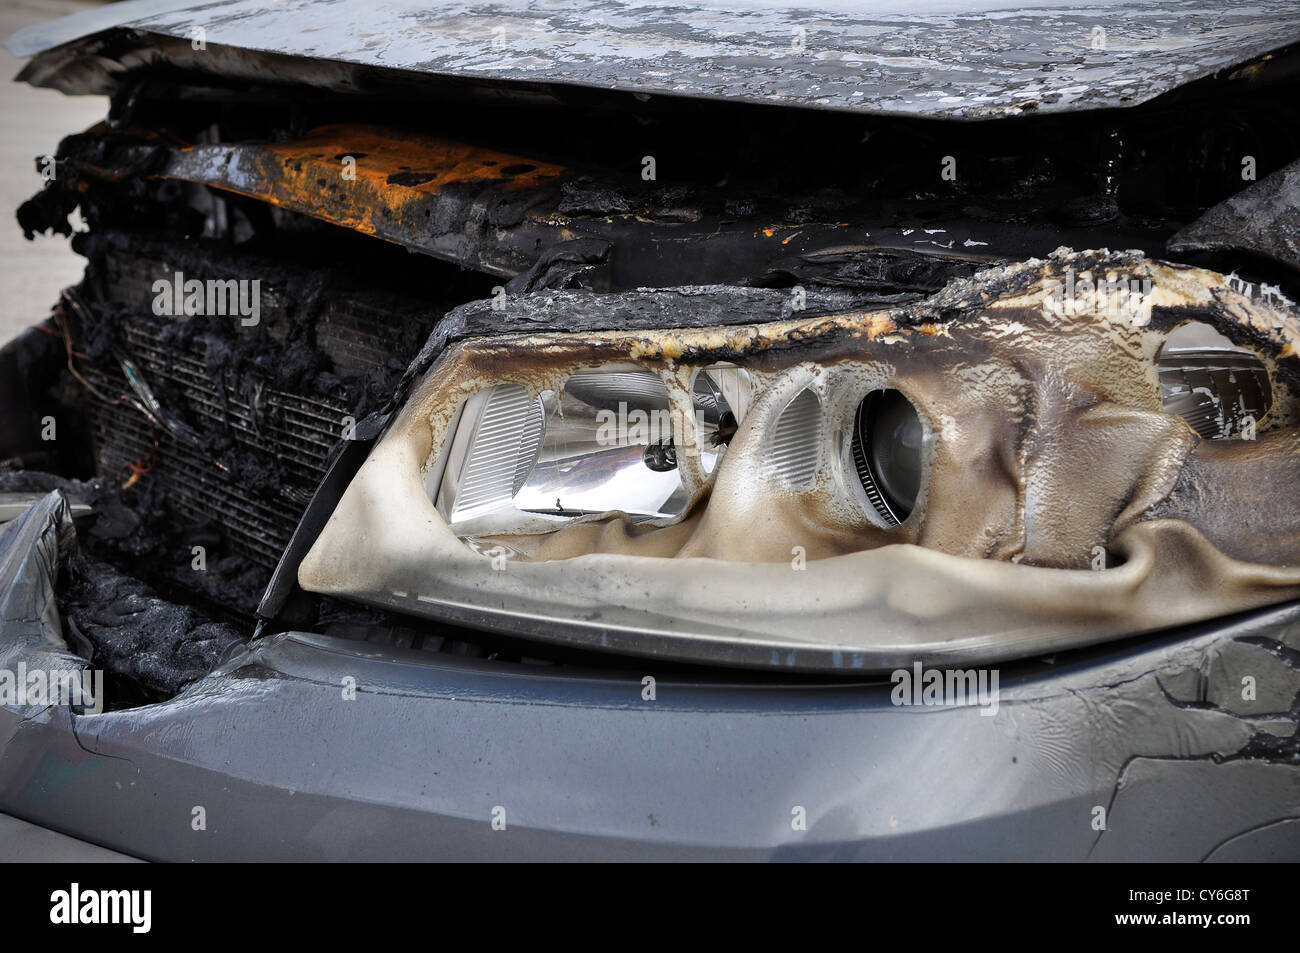 Close up detail of a burnt car in a car accident - Stock Image